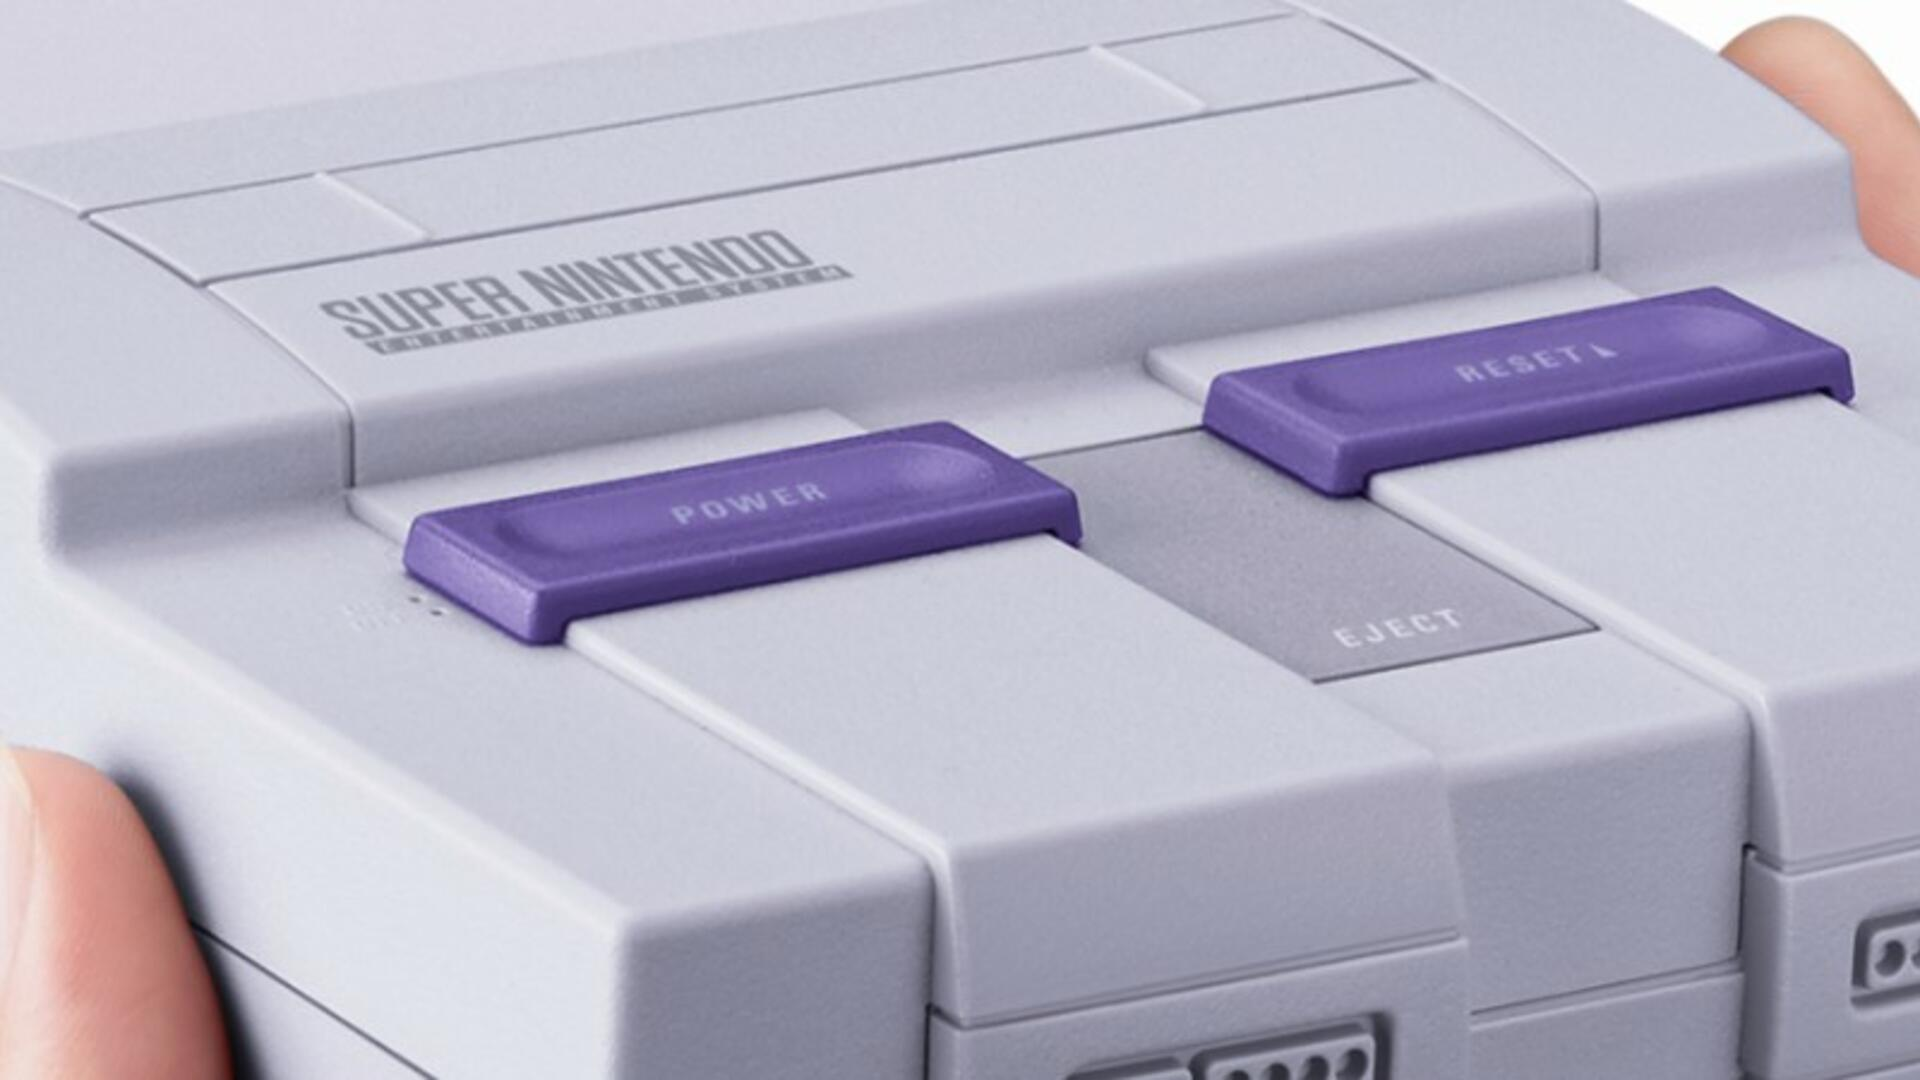 SNES Classic Edition Black Friday Deals - How to Buy a SNES Classic? SNES Classic Release Date, SNES Classic Reviews, What Games are Included?